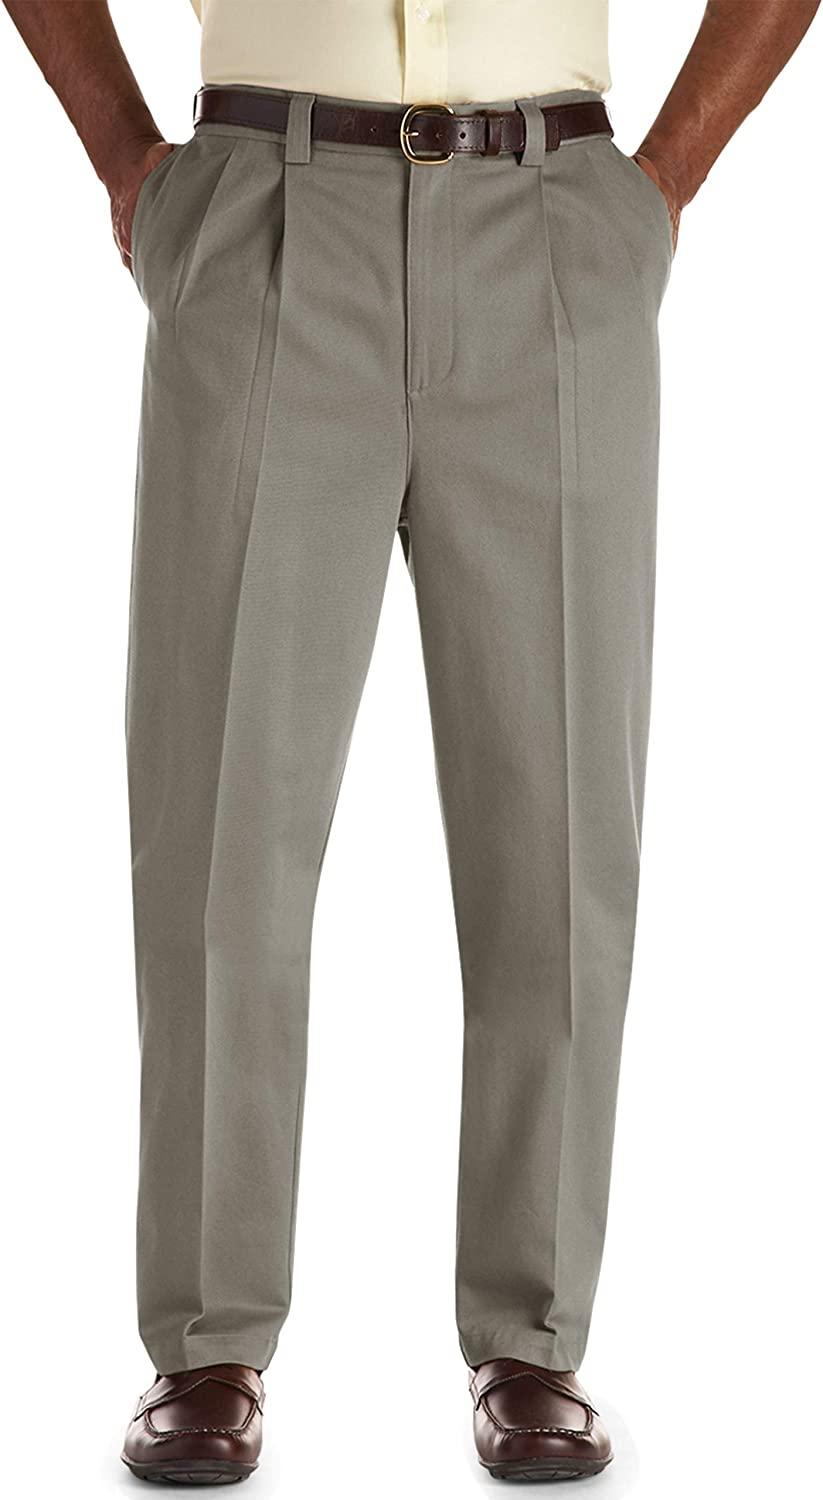 Oak Hill by DXL Big and Tall Waist-Relaxer Premium Pleated Pants